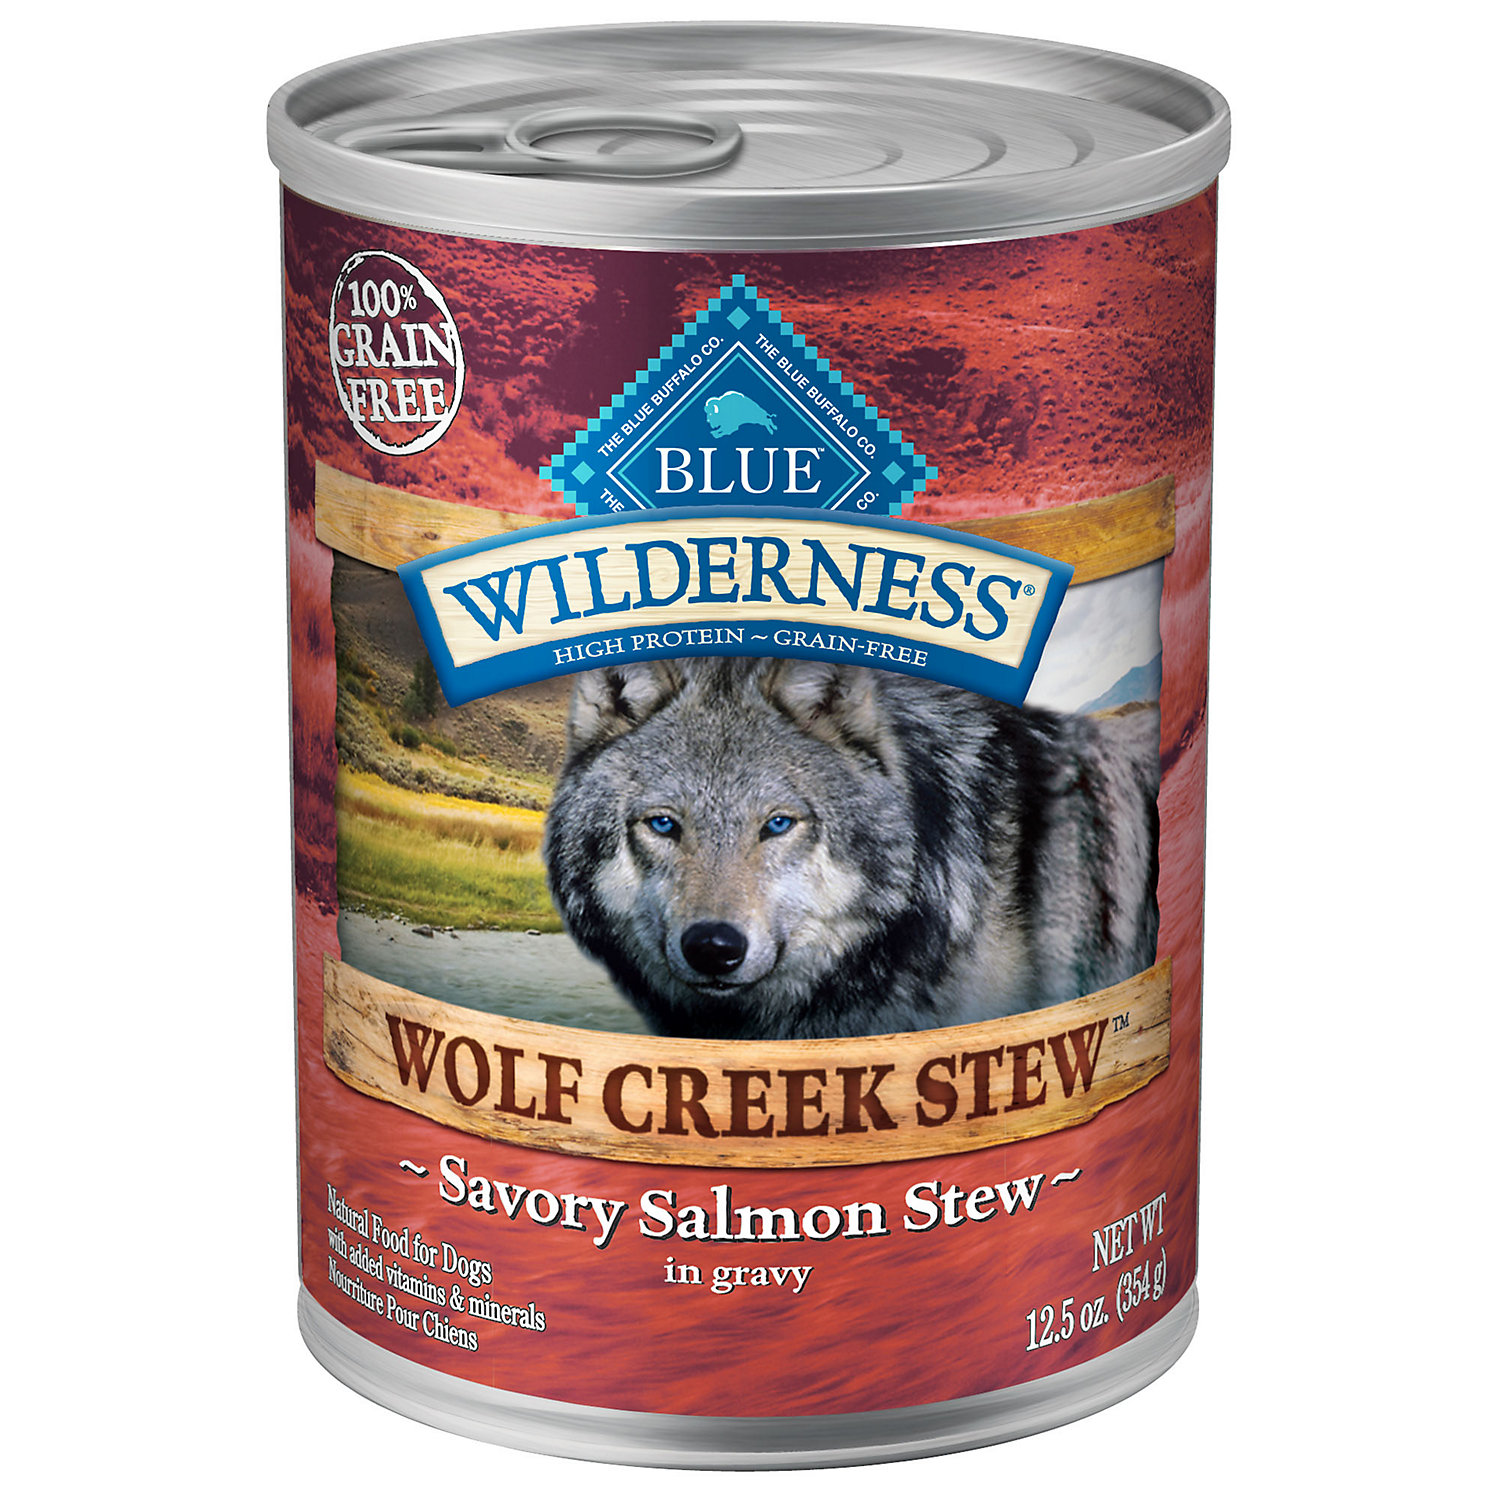 Blue Wilderness Wolf Creek Stew Savory Salmon Stew Canned Food For Adult Dogs 12.5 Oz